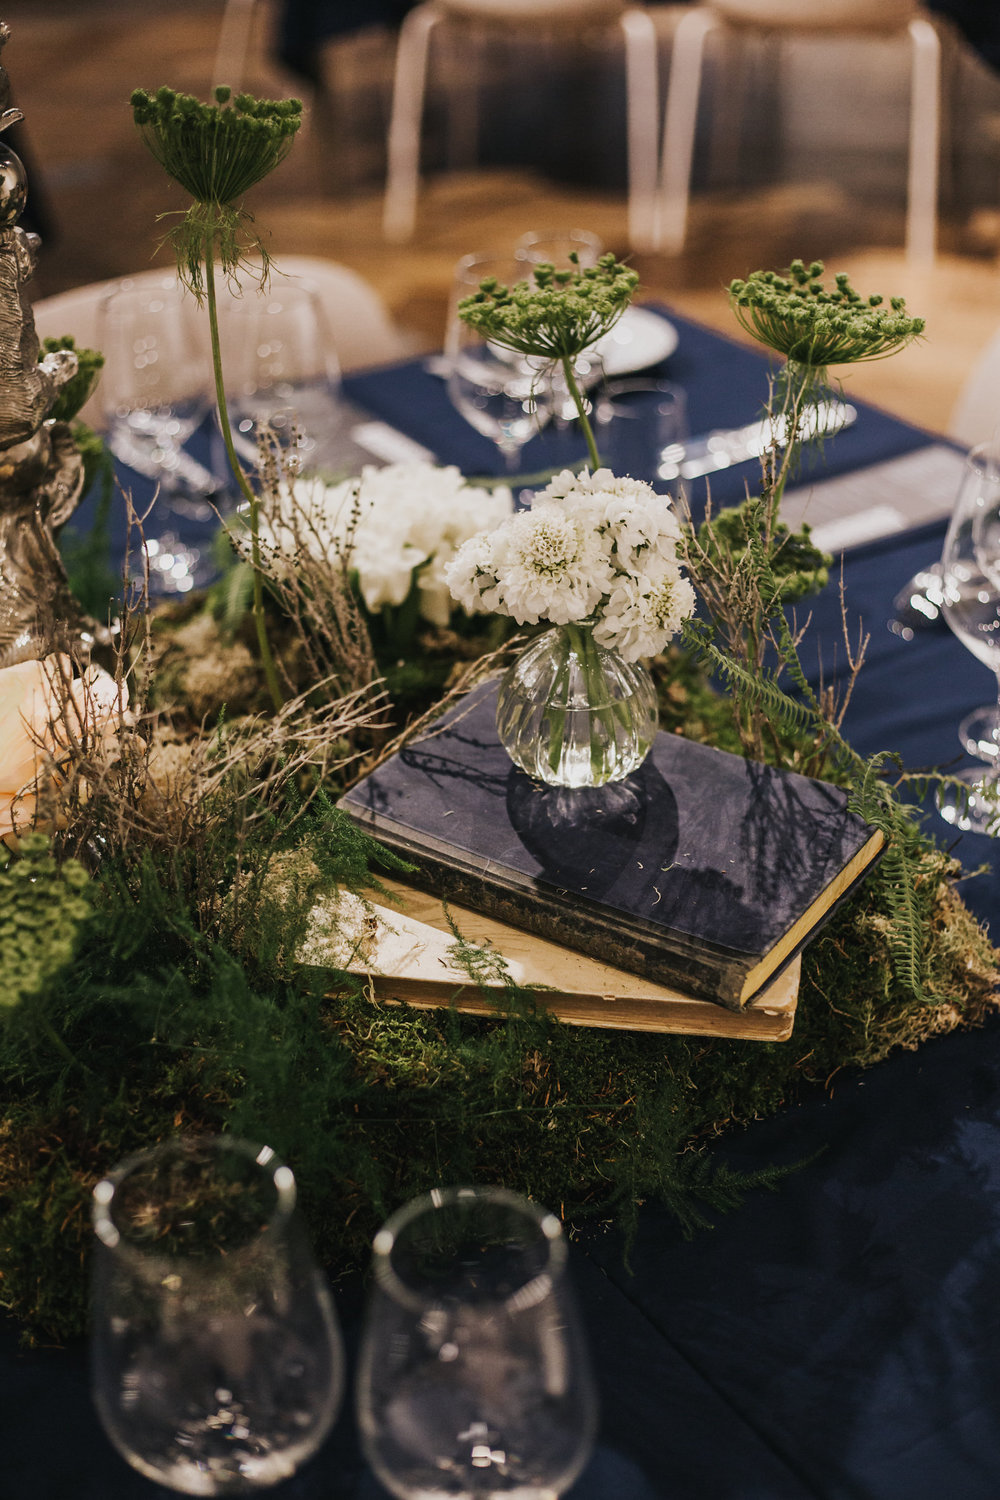 A.P Bloem florist bloemist dining table arrangement vintage Amsterdam flowers sprookjesachtige bloemen wedding bruiloft trouwen marriage Kerkstraat Andaz Hotel wildflowers Alice in Wonderland botanical trouwtrends bruiloft trends wedding goals trouwinspiratie trouwen photoshoot fairytale